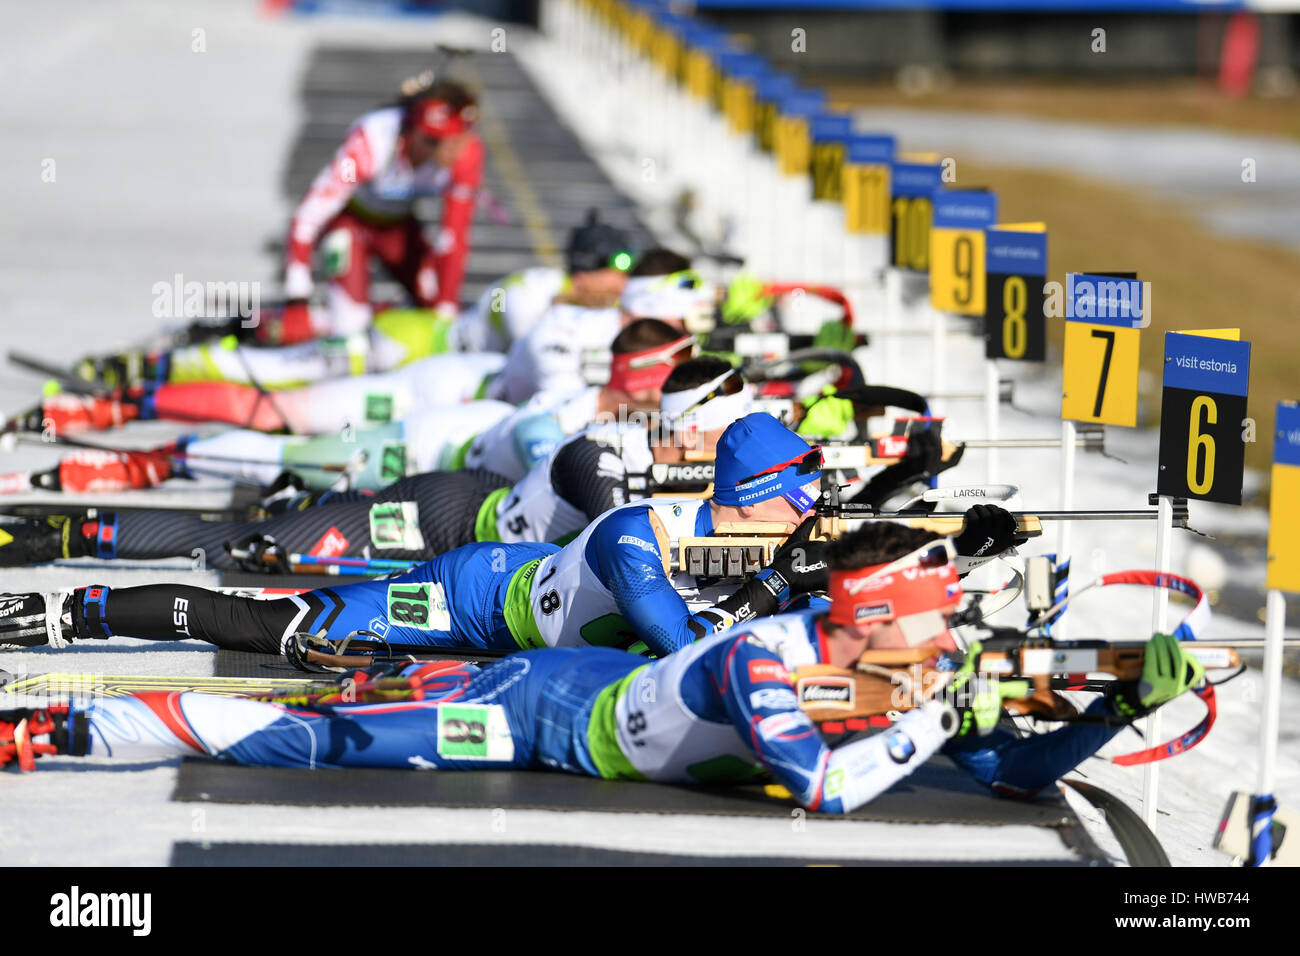 Beijing, Estonia. 12th Mar, 2017. Biathletes compete during the single mixed relay final of IBU Cup 2016/2017 in - Stock Image